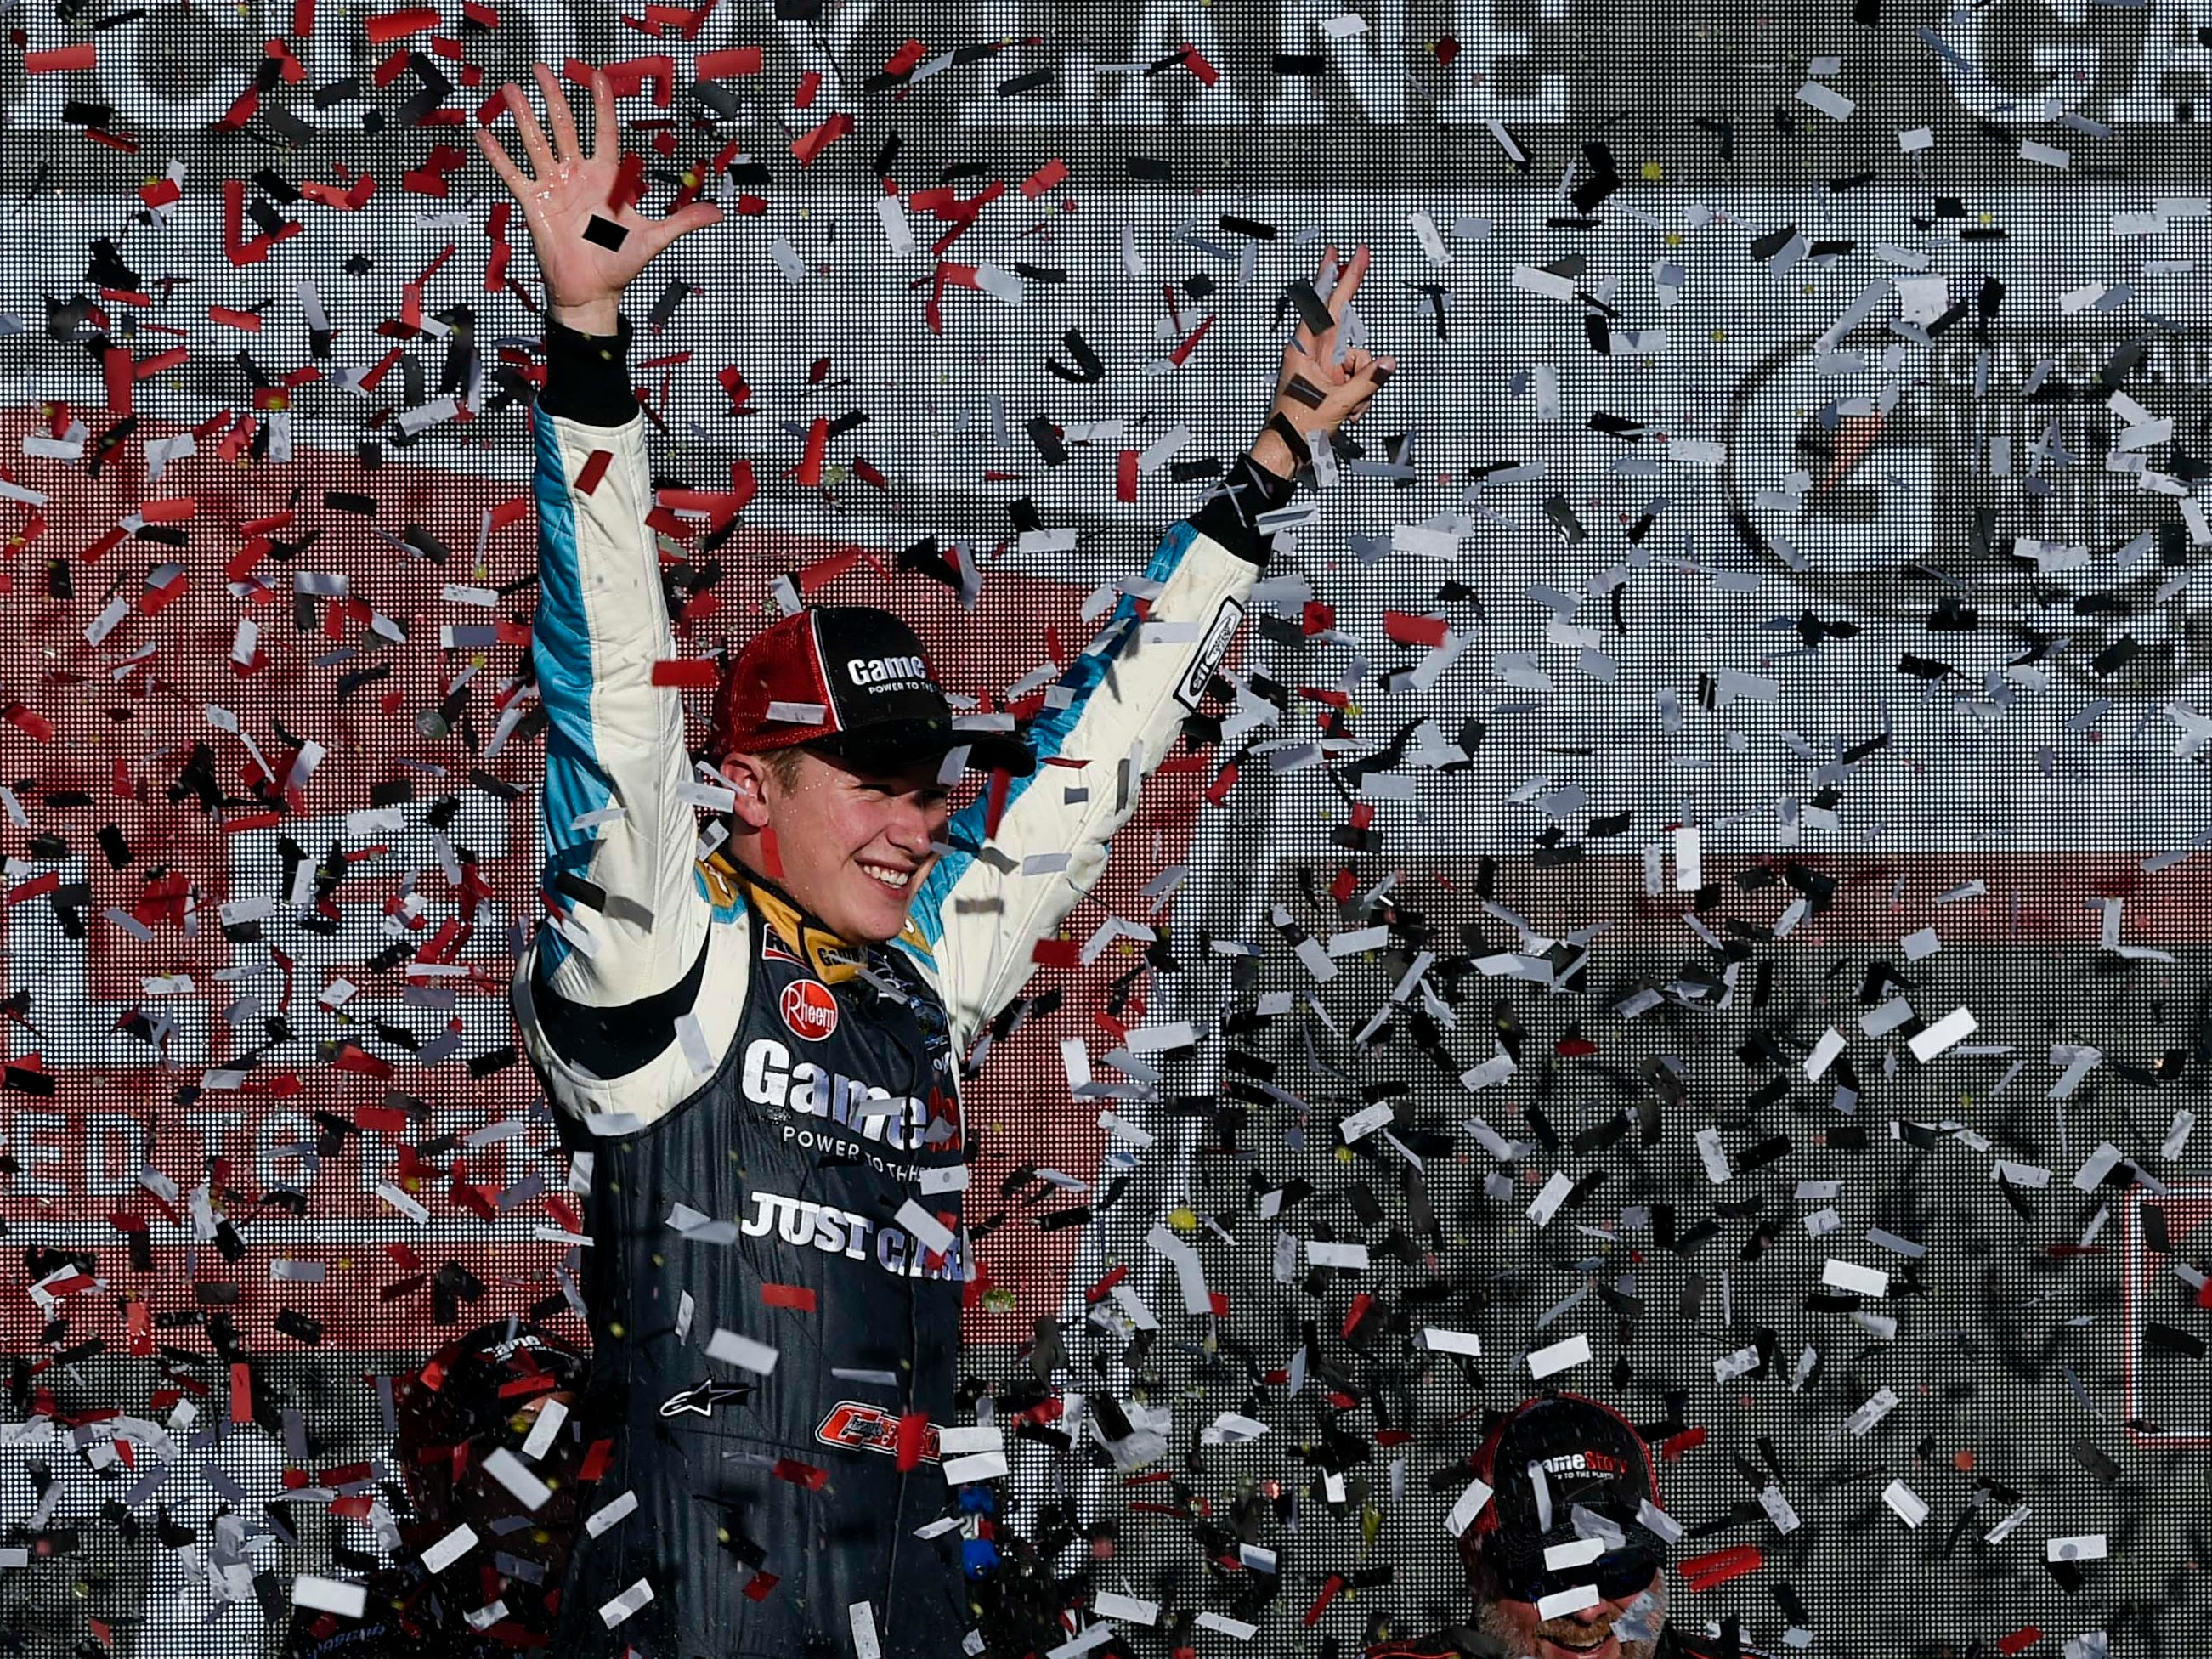 Nov 10, 2018; Avondale, AZ, USA; NASCAR Xfinity Series driver Christopher Bell (20) celebrates after winning the NASCAR Xfinity Series Race at ISM Raceway. Mandatory Credit: Kelvin Kuo-USA TODAY Sports